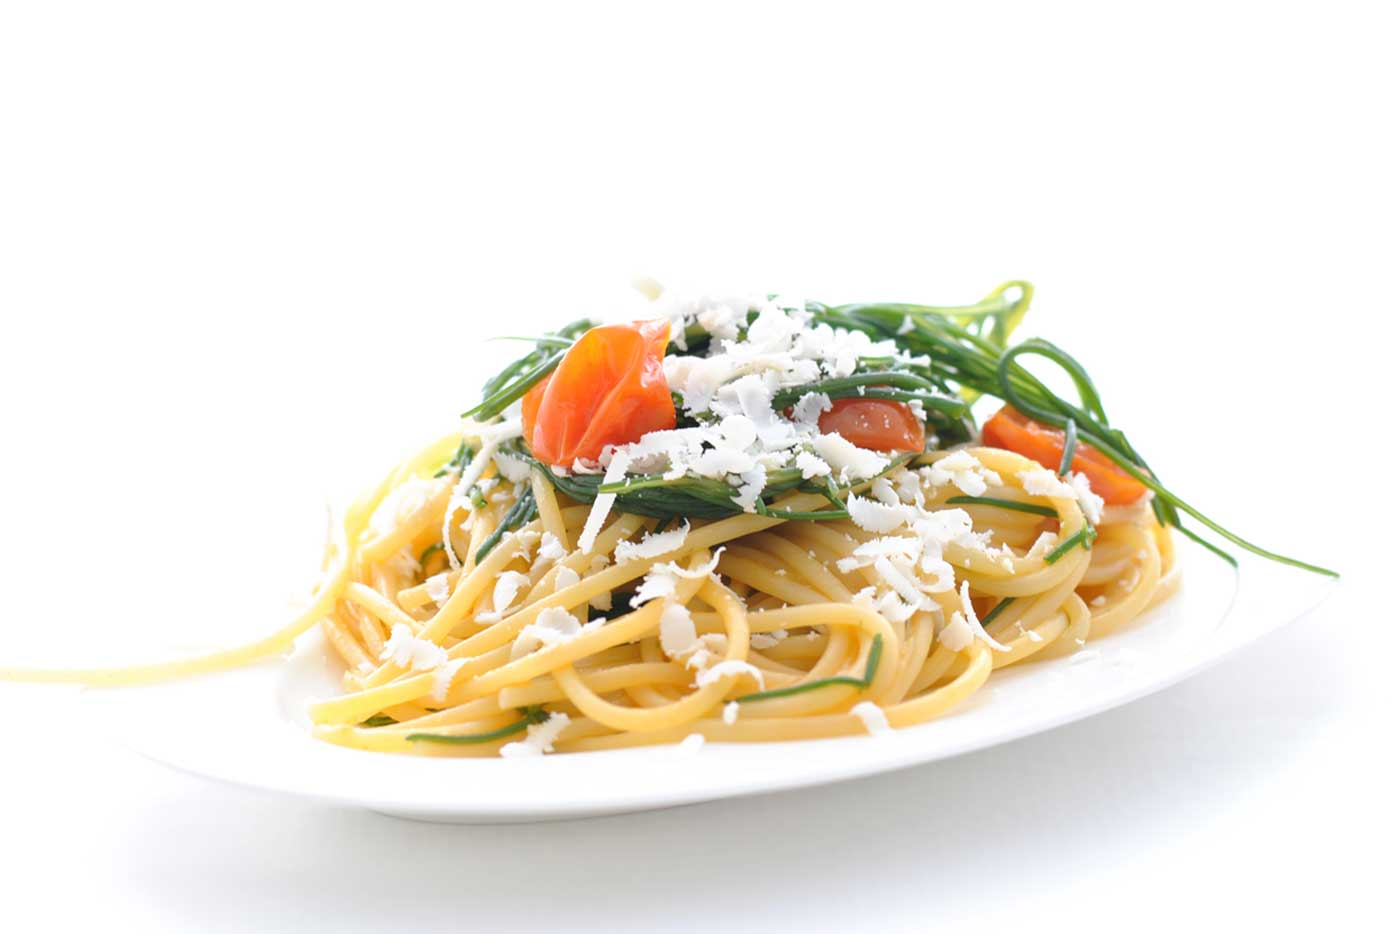 Pasta-con-agretti-img-post-1